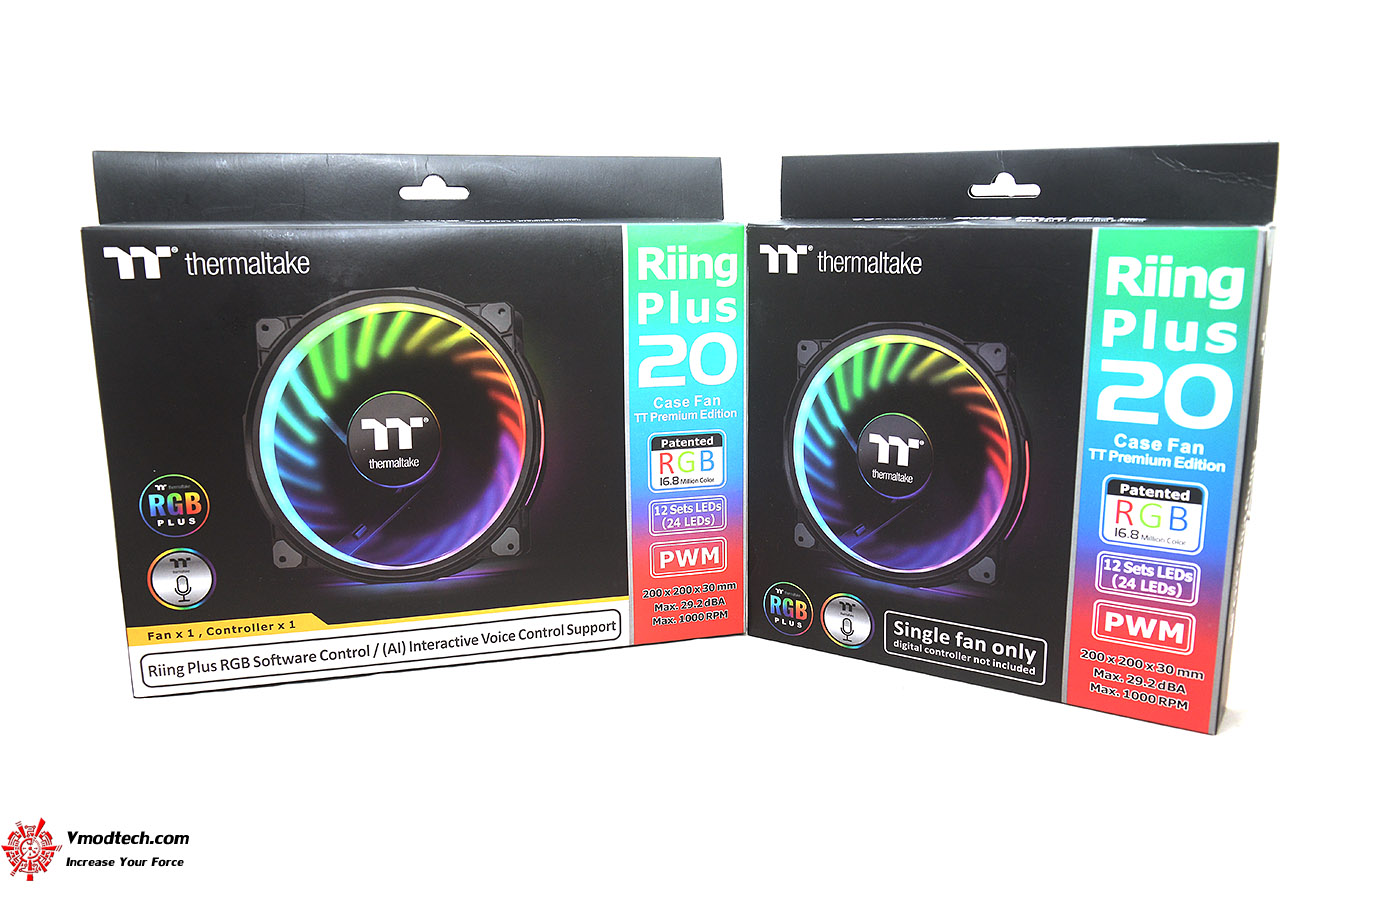 dsc 6709 Thermaltake Riing Plus 20 RGB Case Fan TT Premium Edition (Single Fan Pack w/o Controller) Review